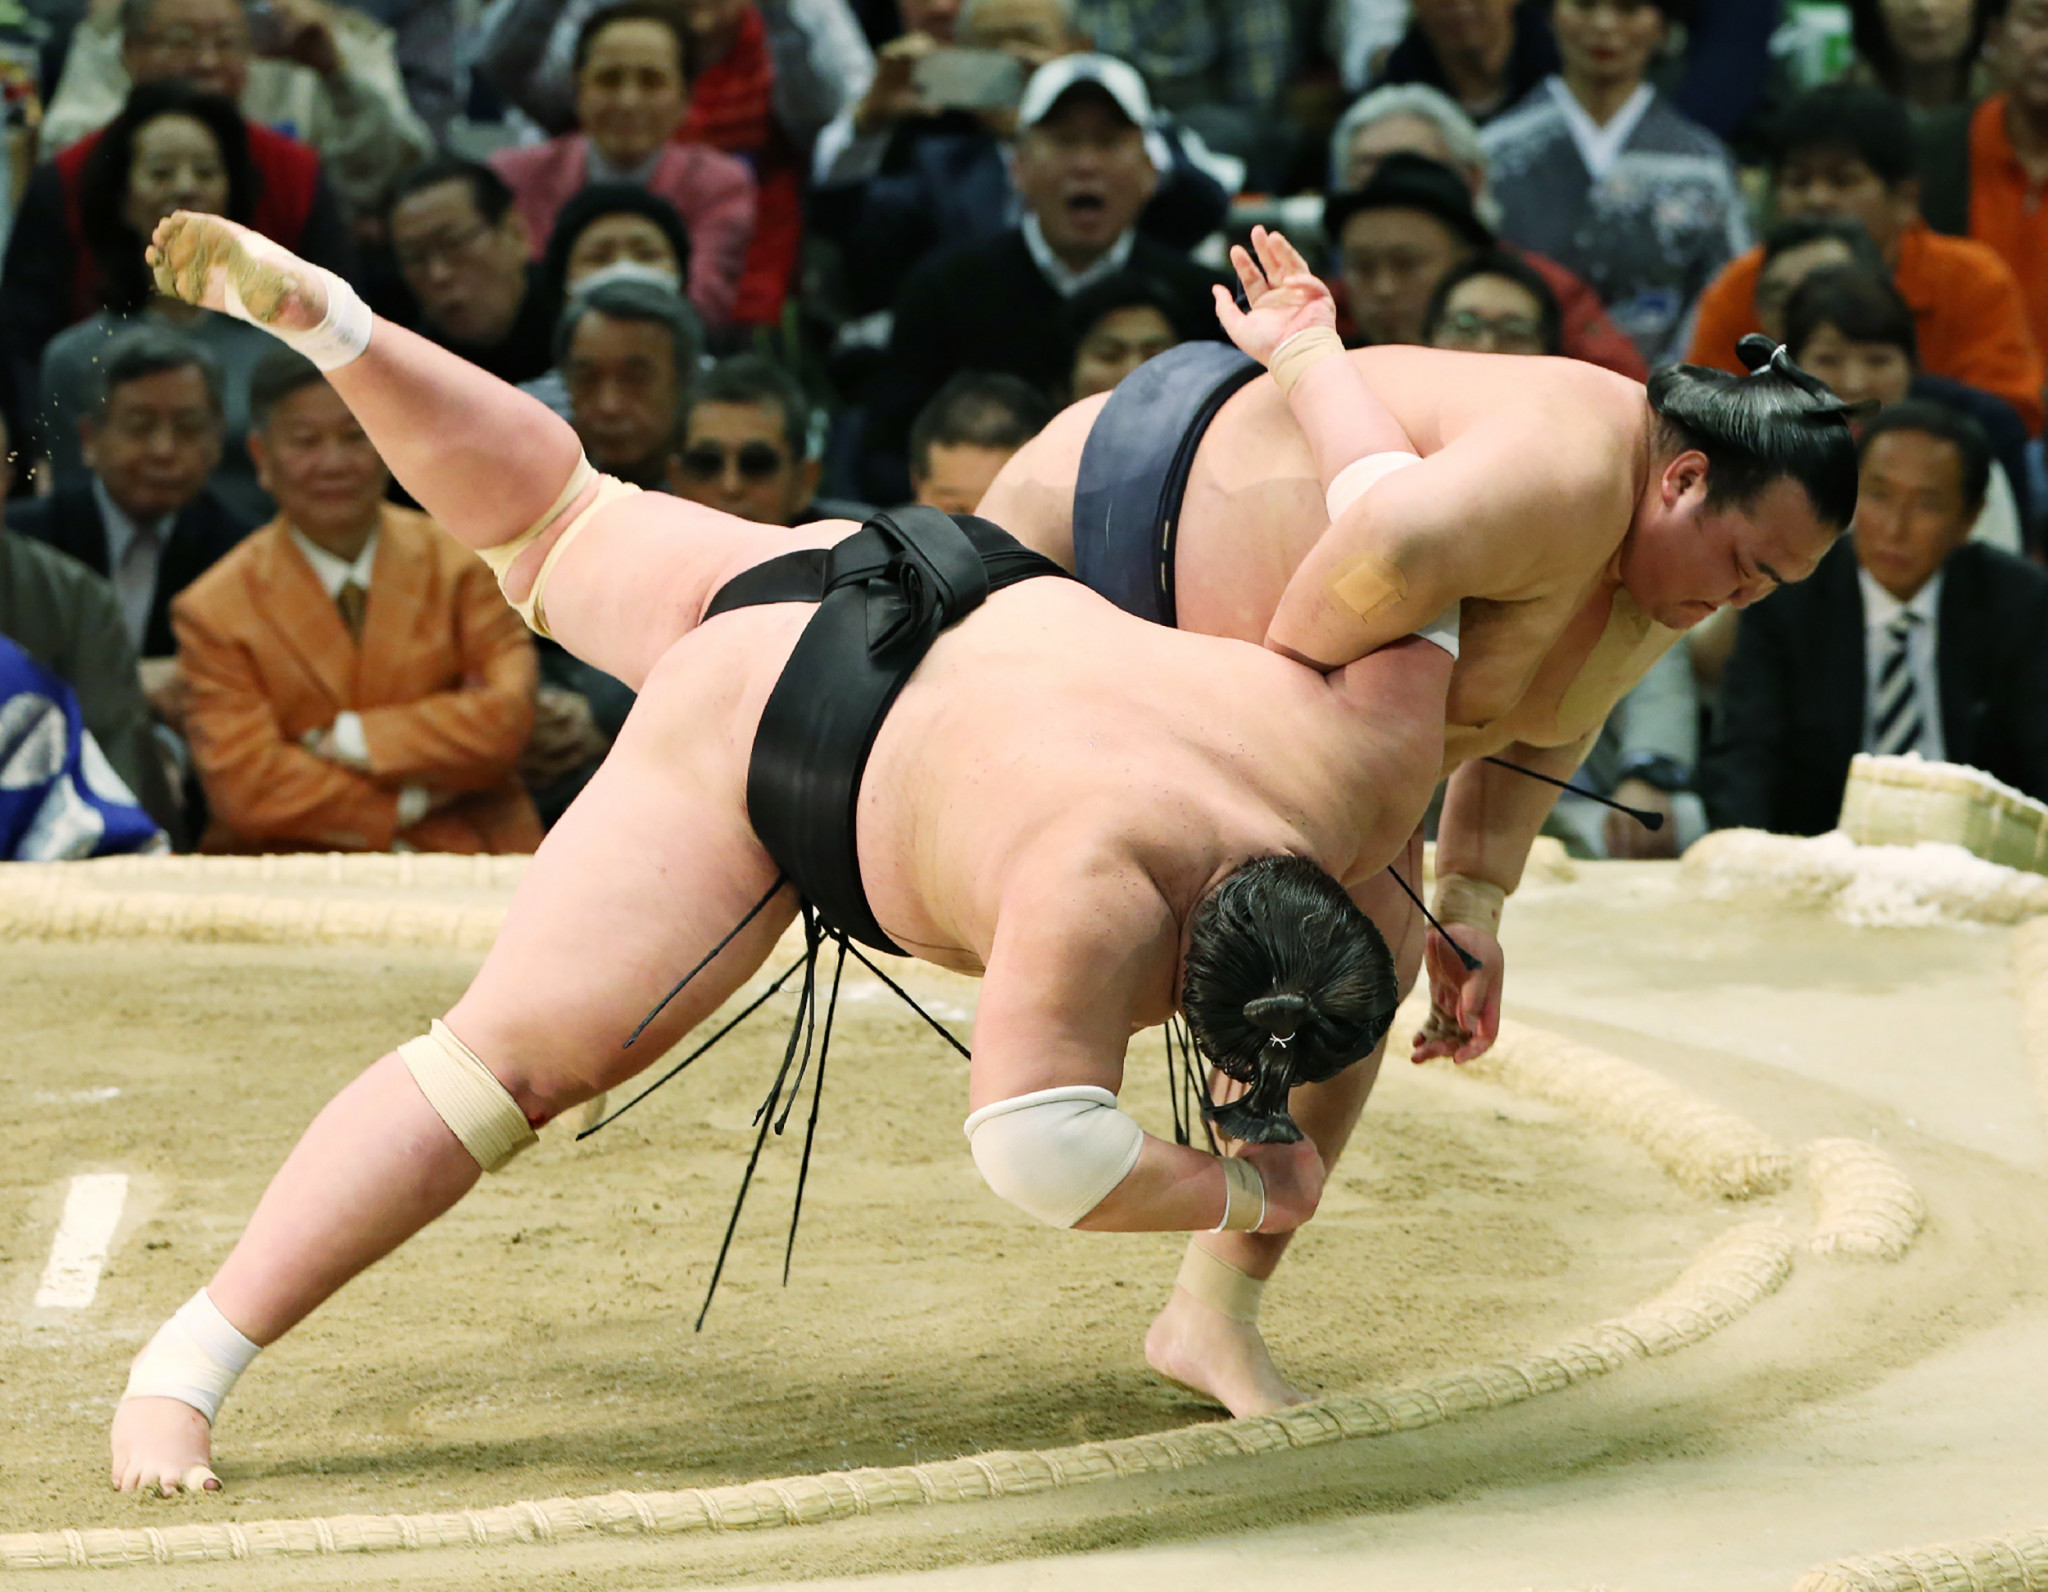 Japan's Spring Grand Sumo Tournament to be held behind closed doors due to coronavirus